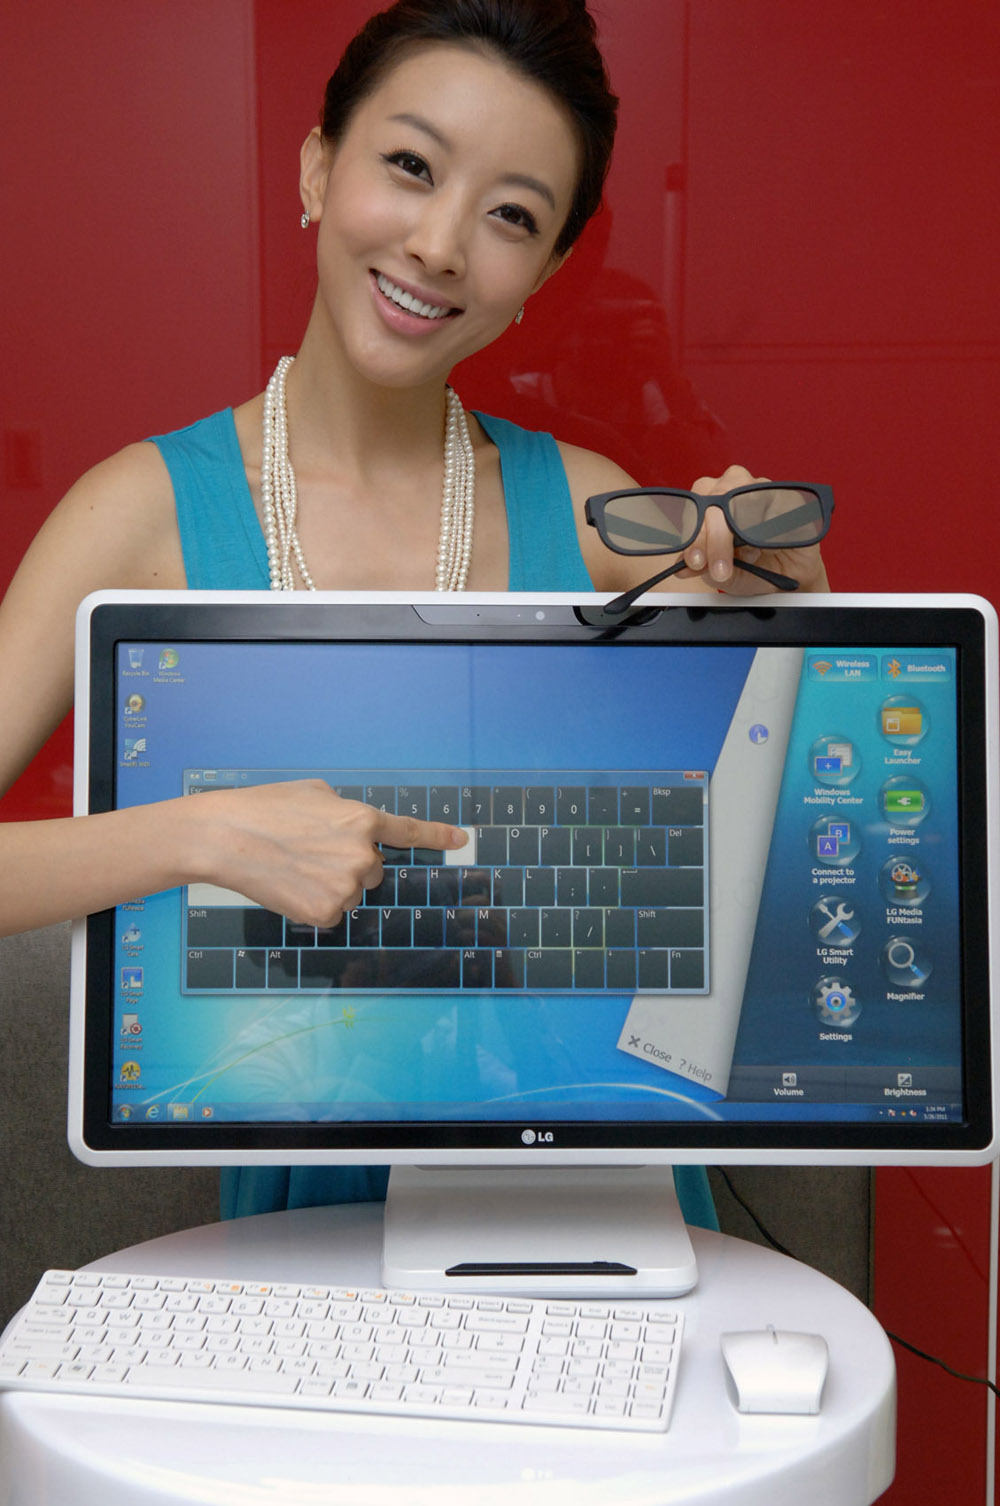 Marketing image of a model pointing at the touch screen of the LG ALL-IN-ONE PC